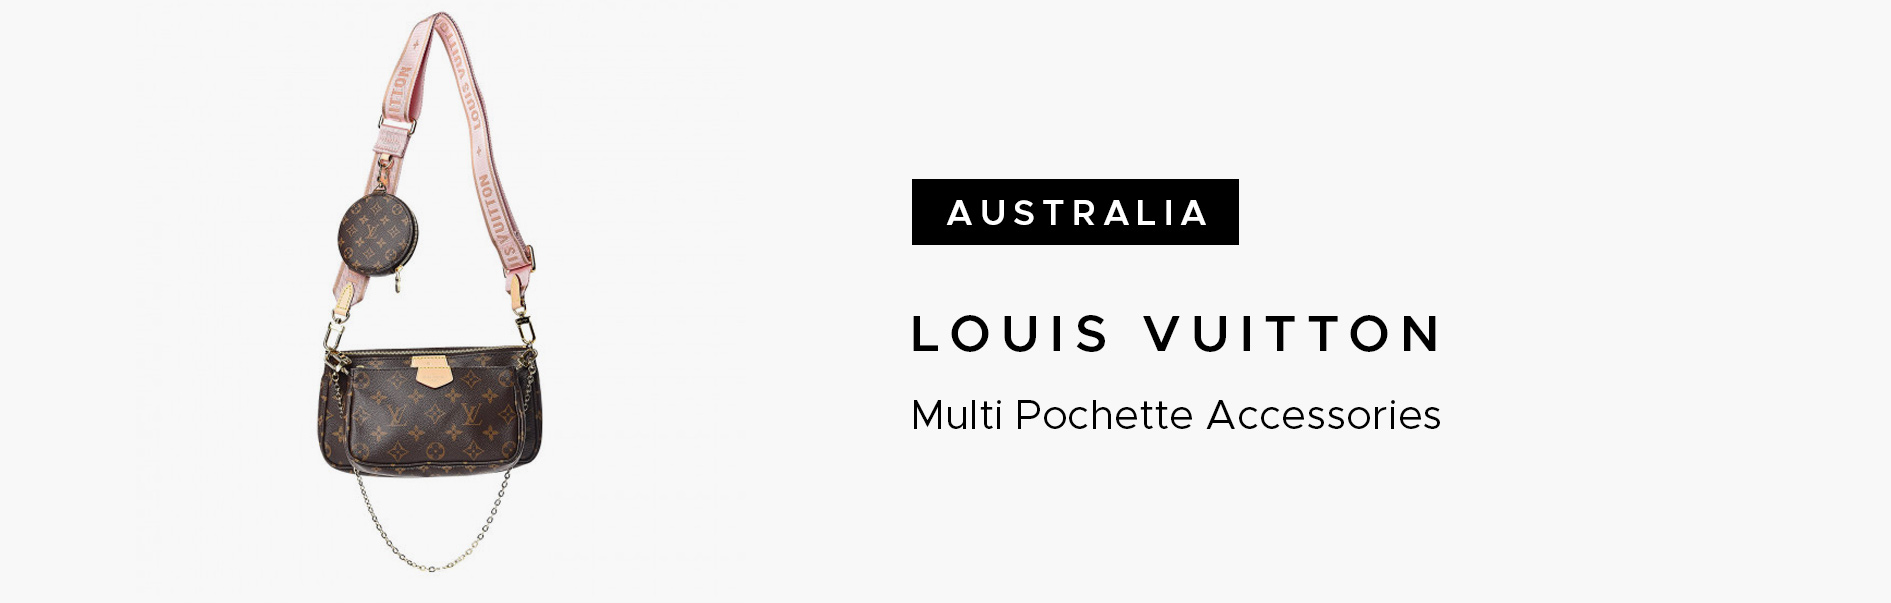 Australia Louis Vuitton Multi Pochette Accessories